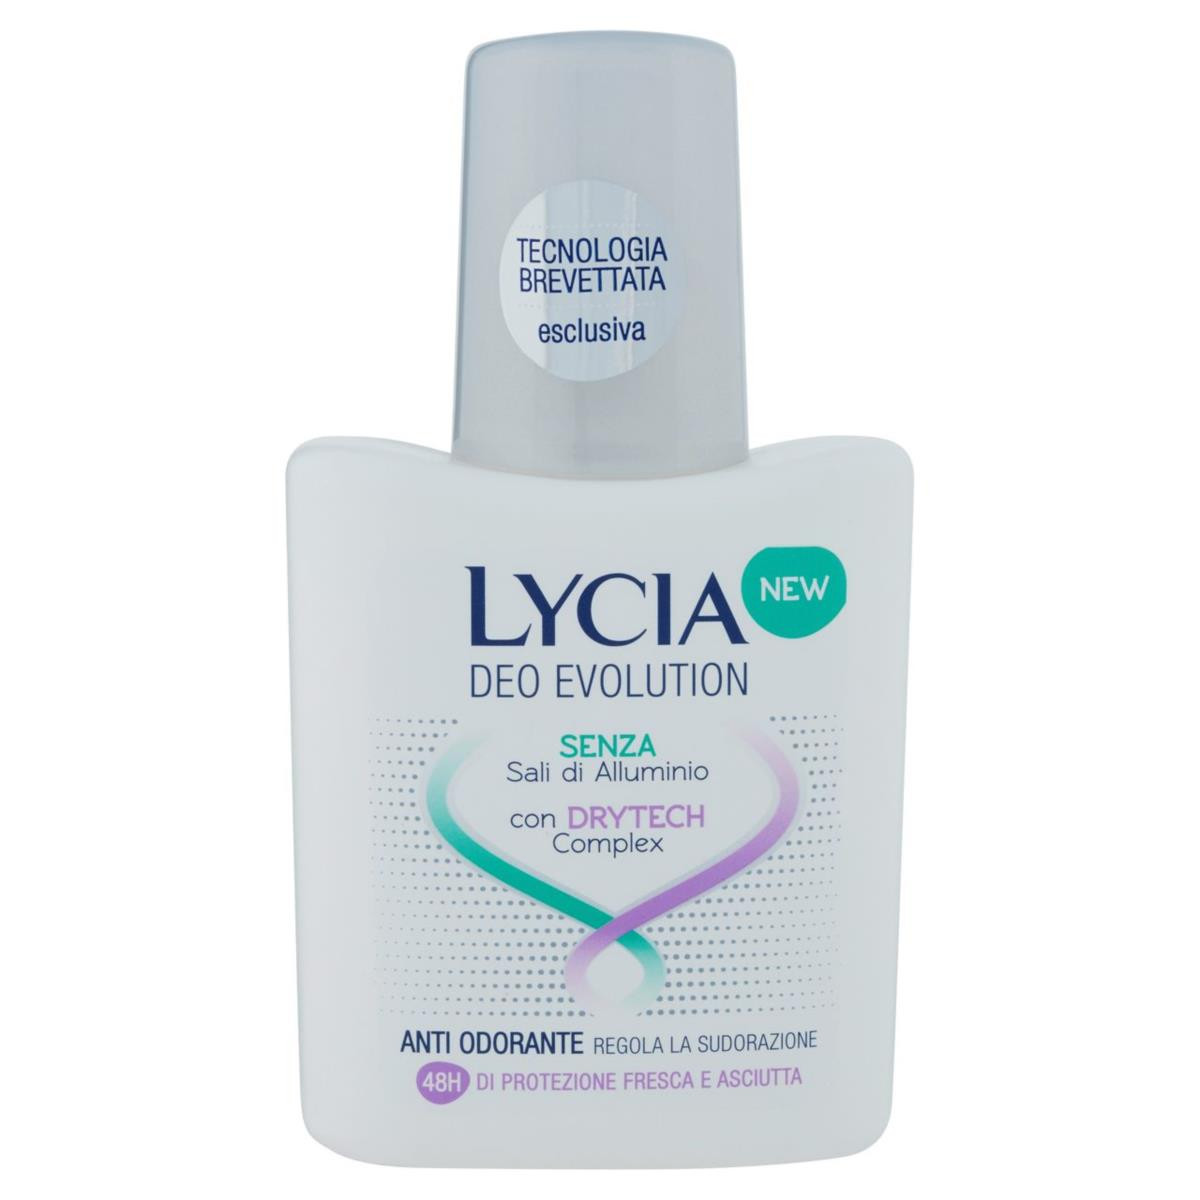 Lycia Deo Evolution Vapo 75ml